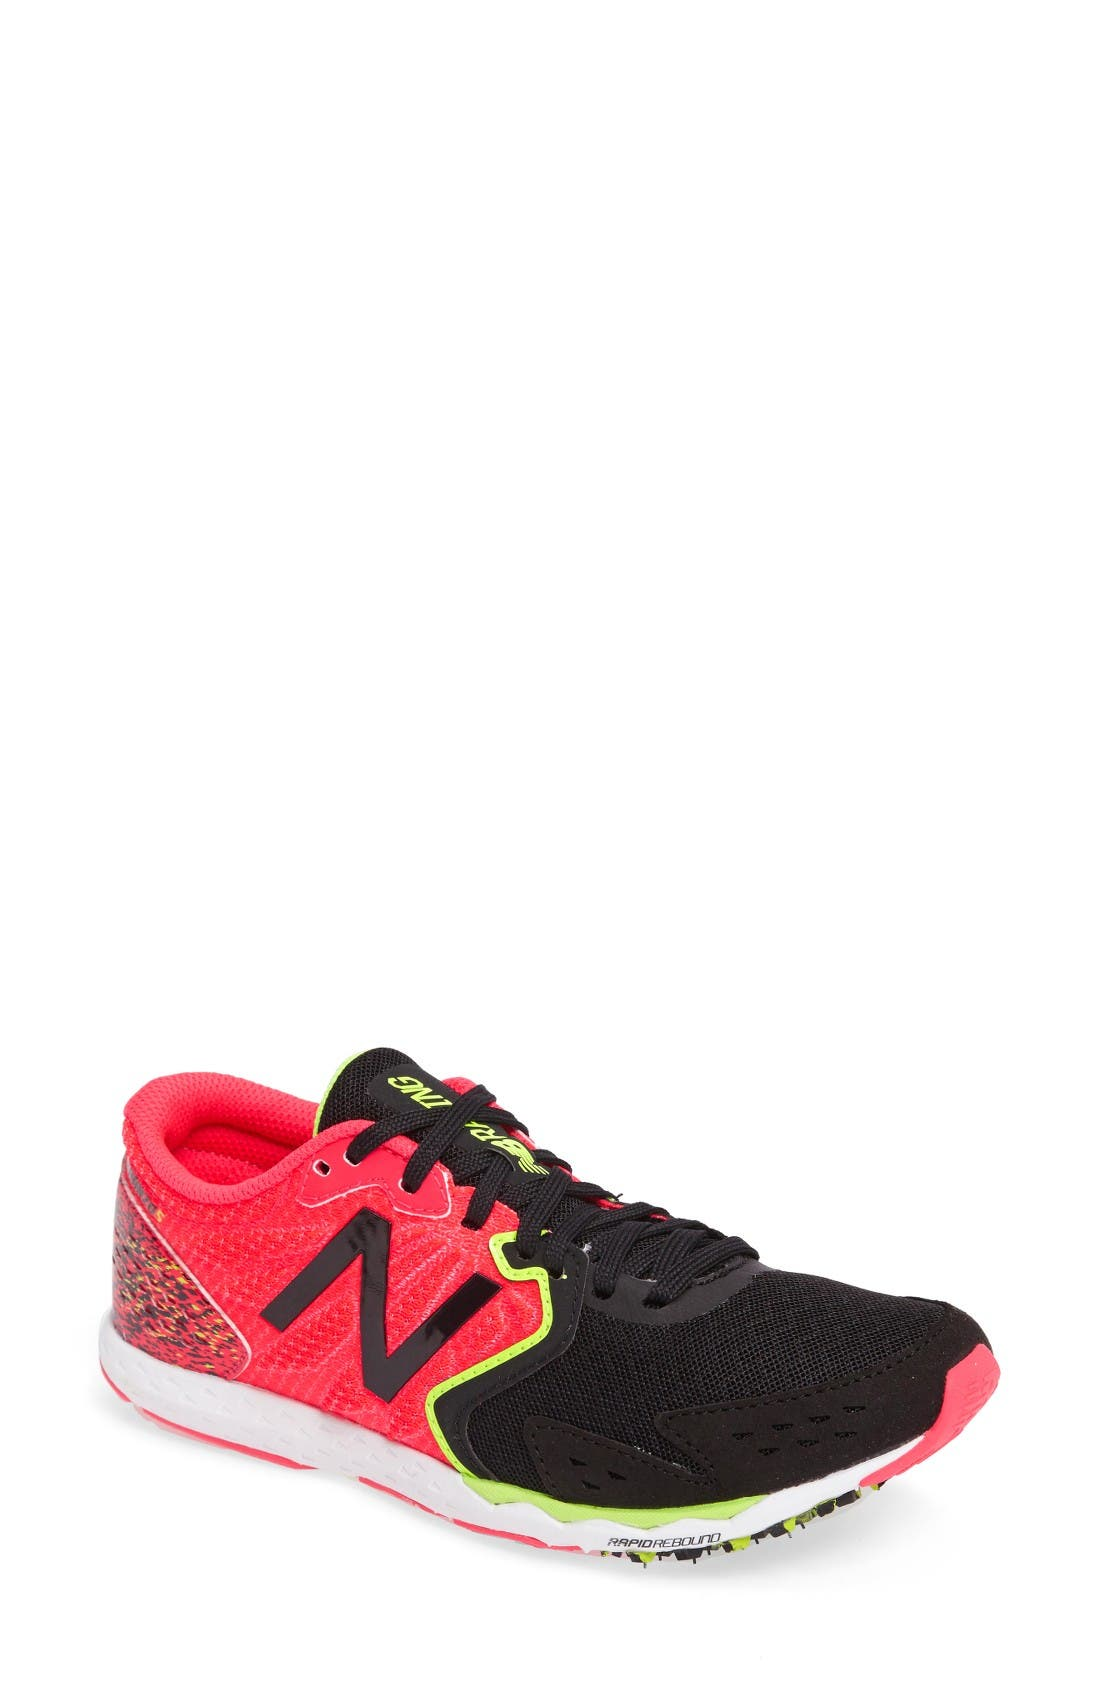 NEW BALANCE Hanzo S Running Shoe